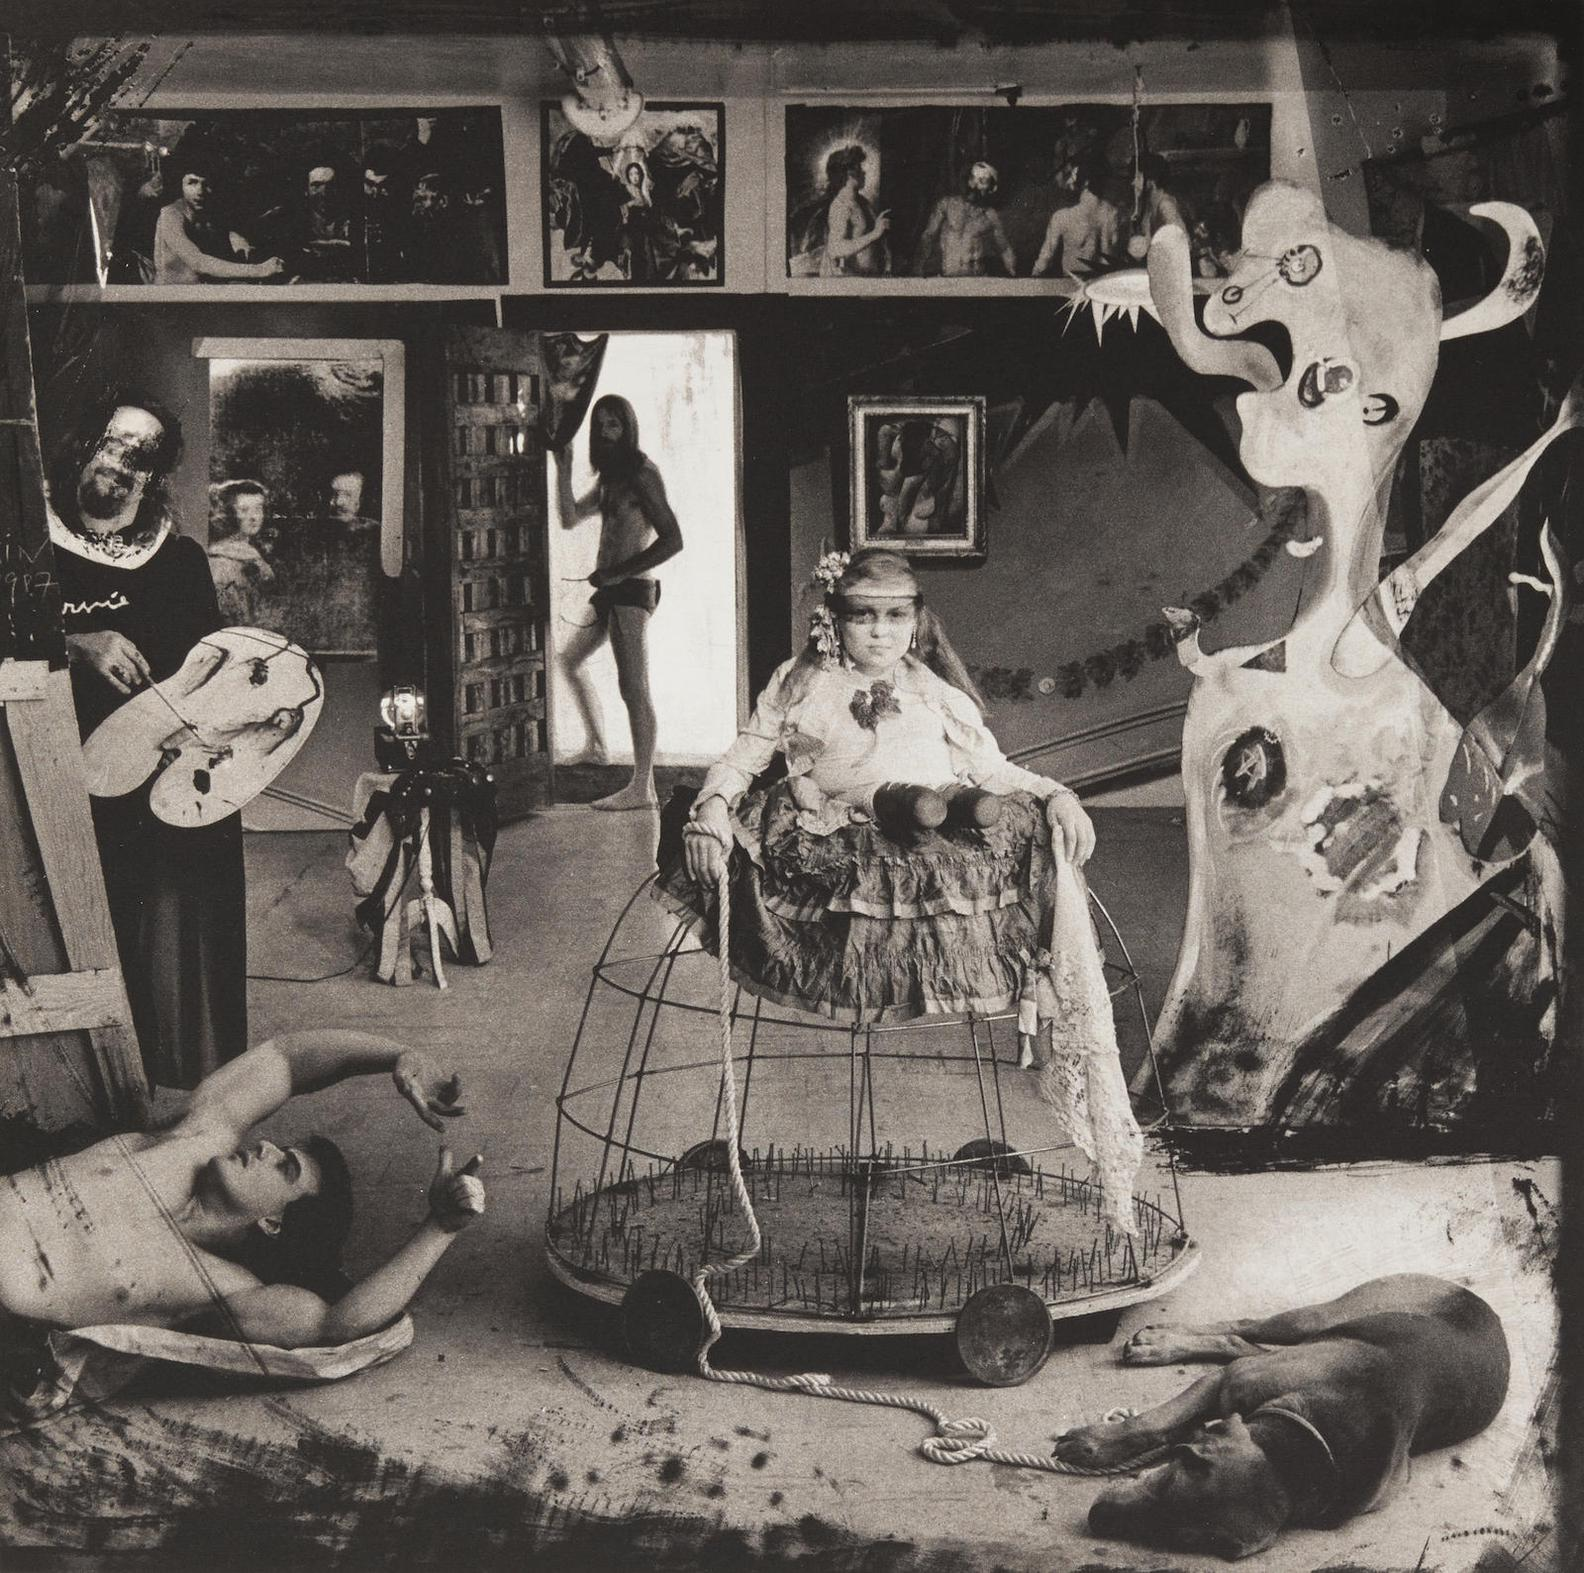 Joel-Peter Witkin-Twelve Photographs-1933